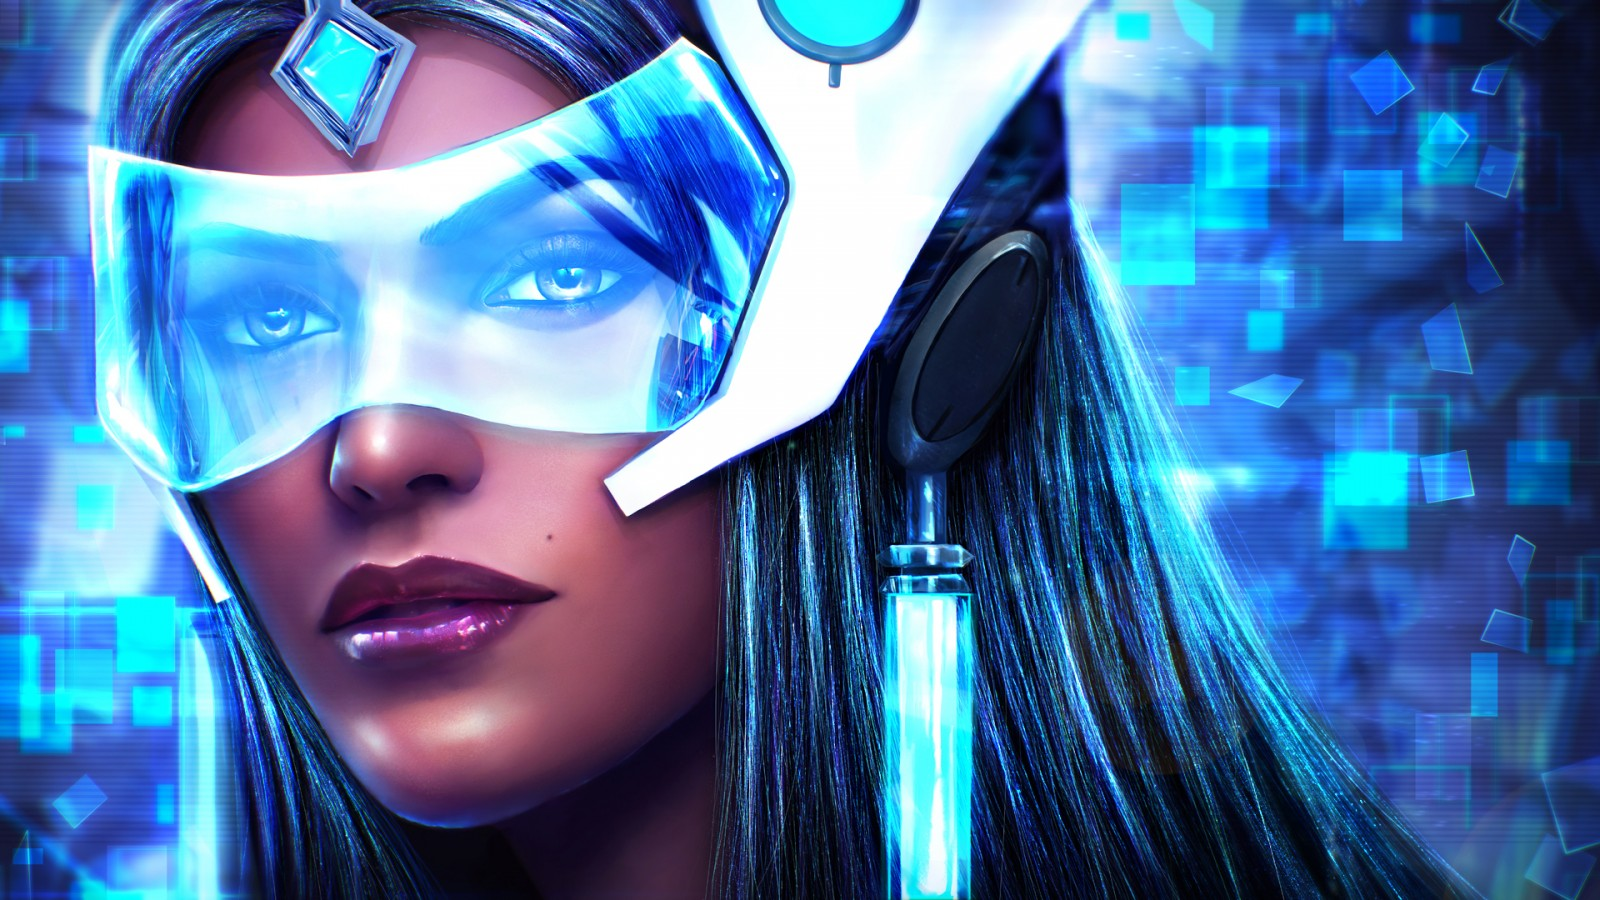 Space Iphone 6 Wallpaper Symmetra In Overwatch Artwork Wallpapers Hd Wallpapers